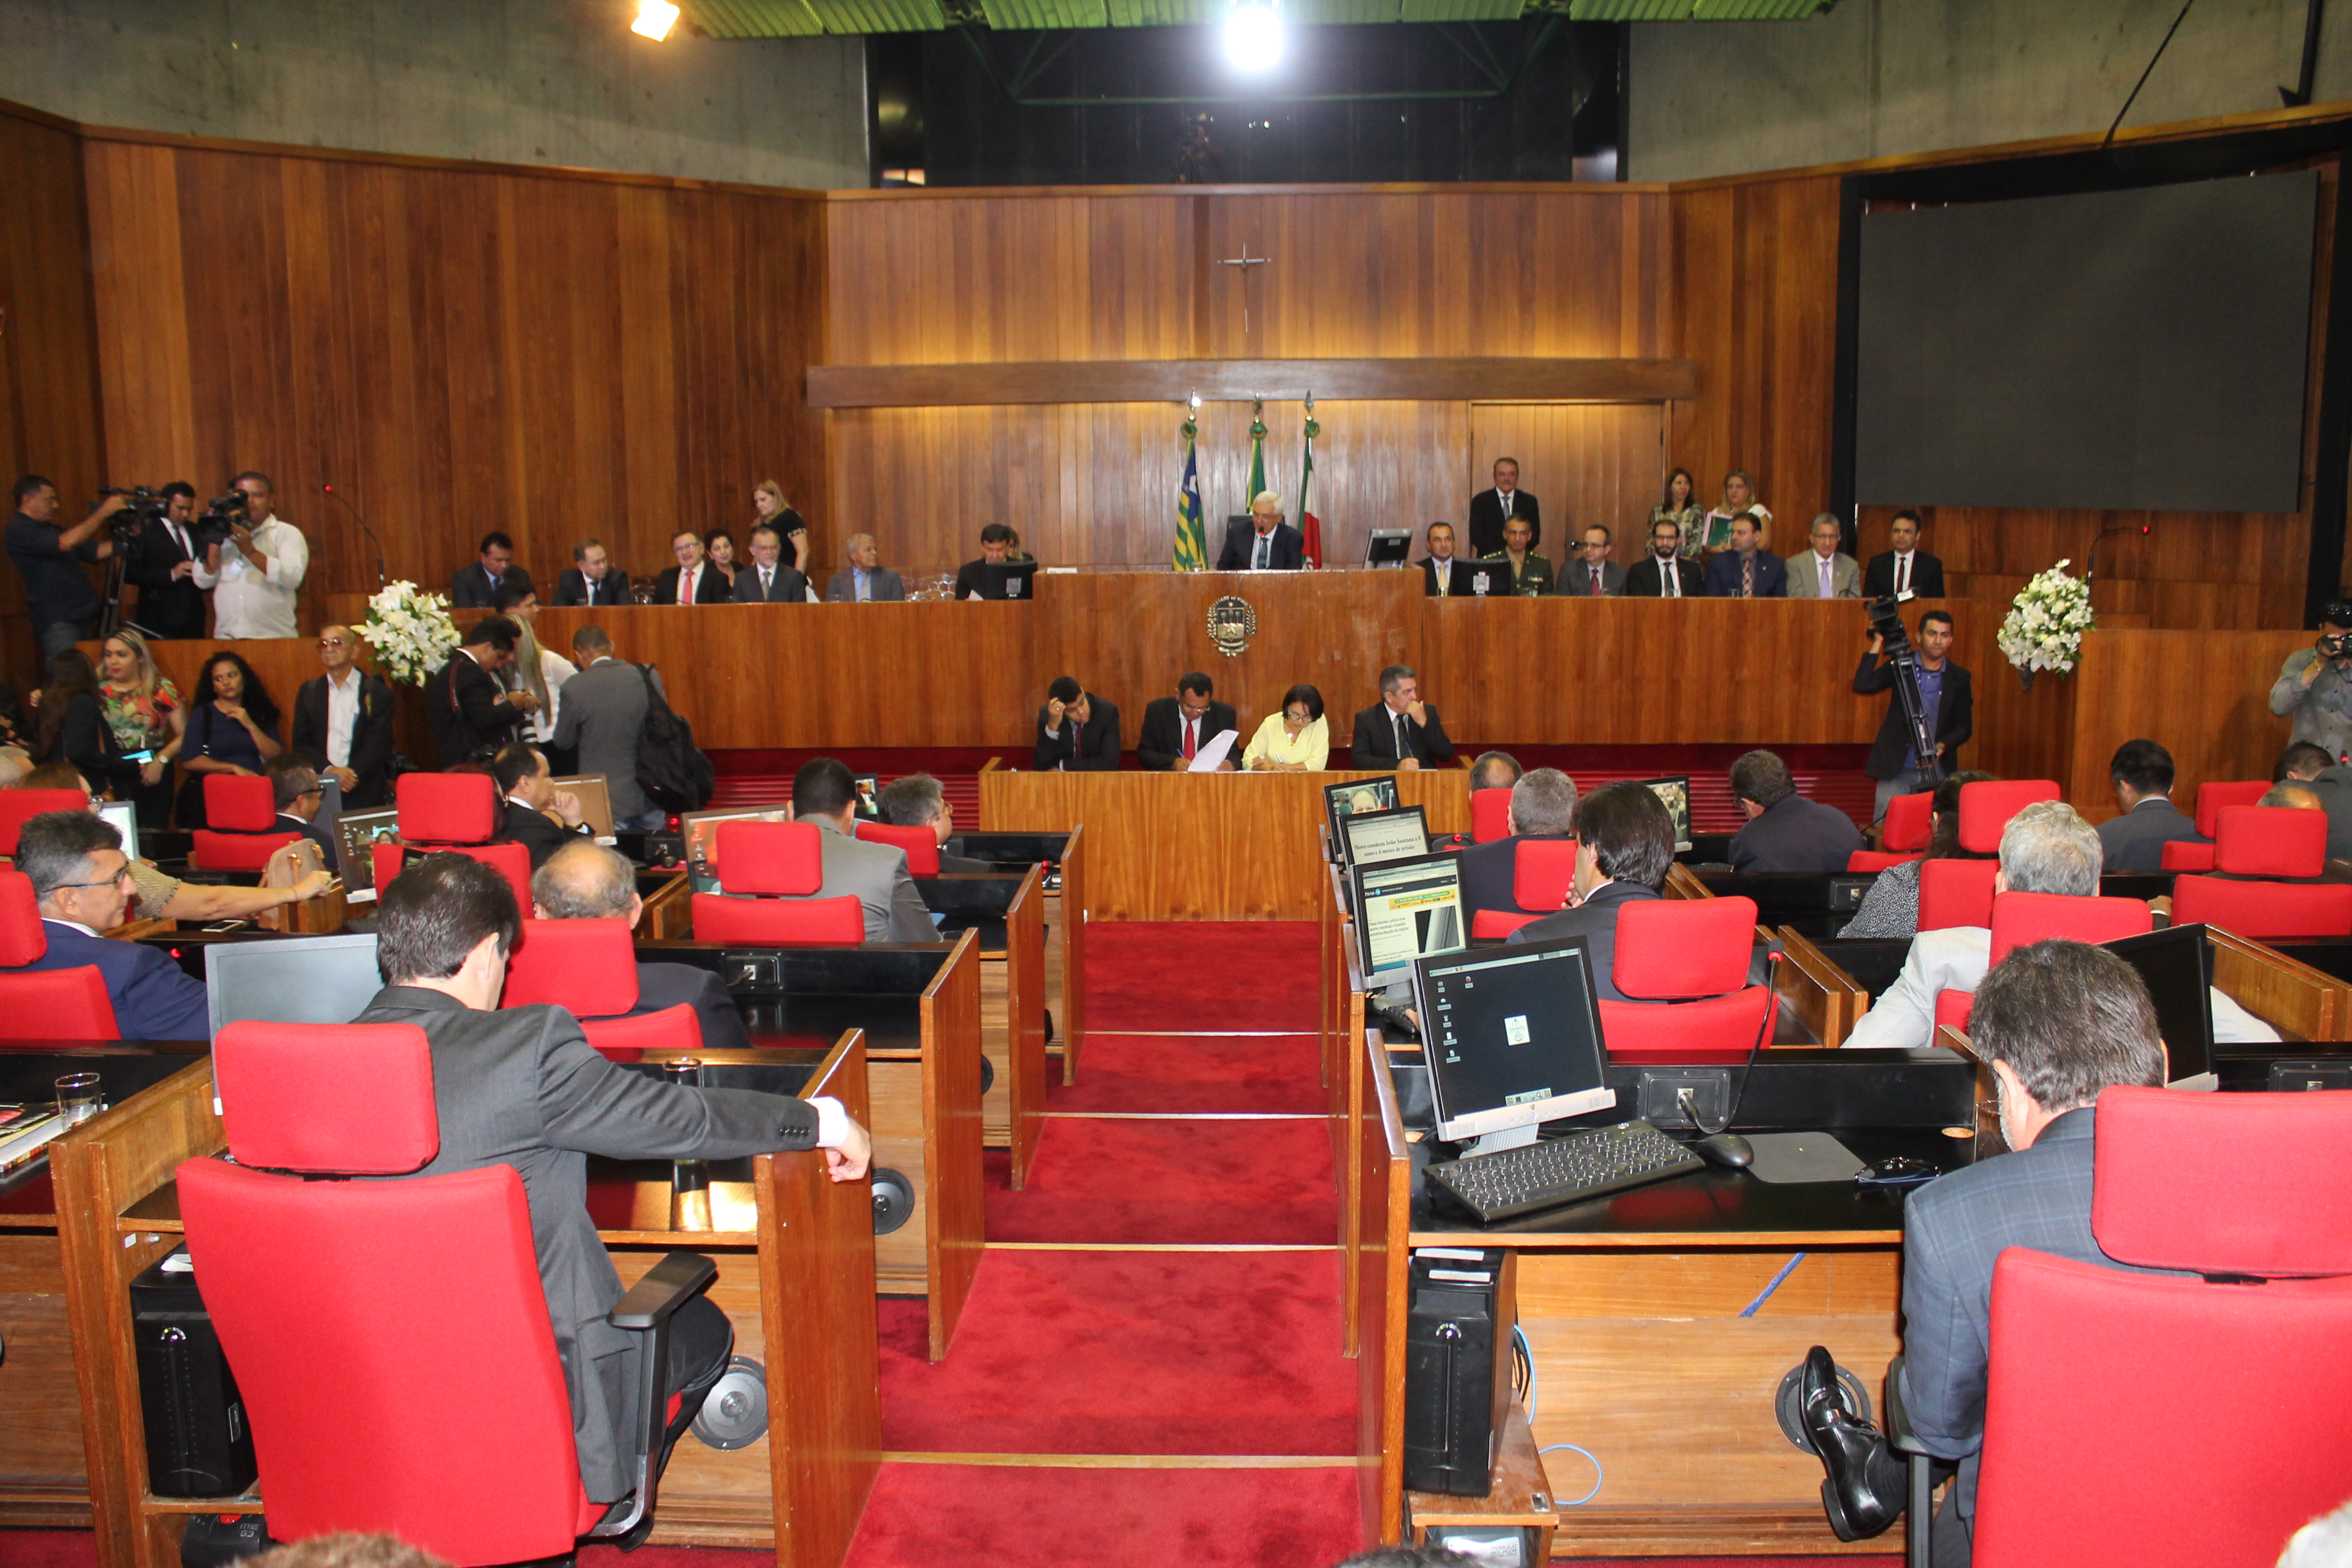 Plenário da Assembleia Legislativa do Piauí